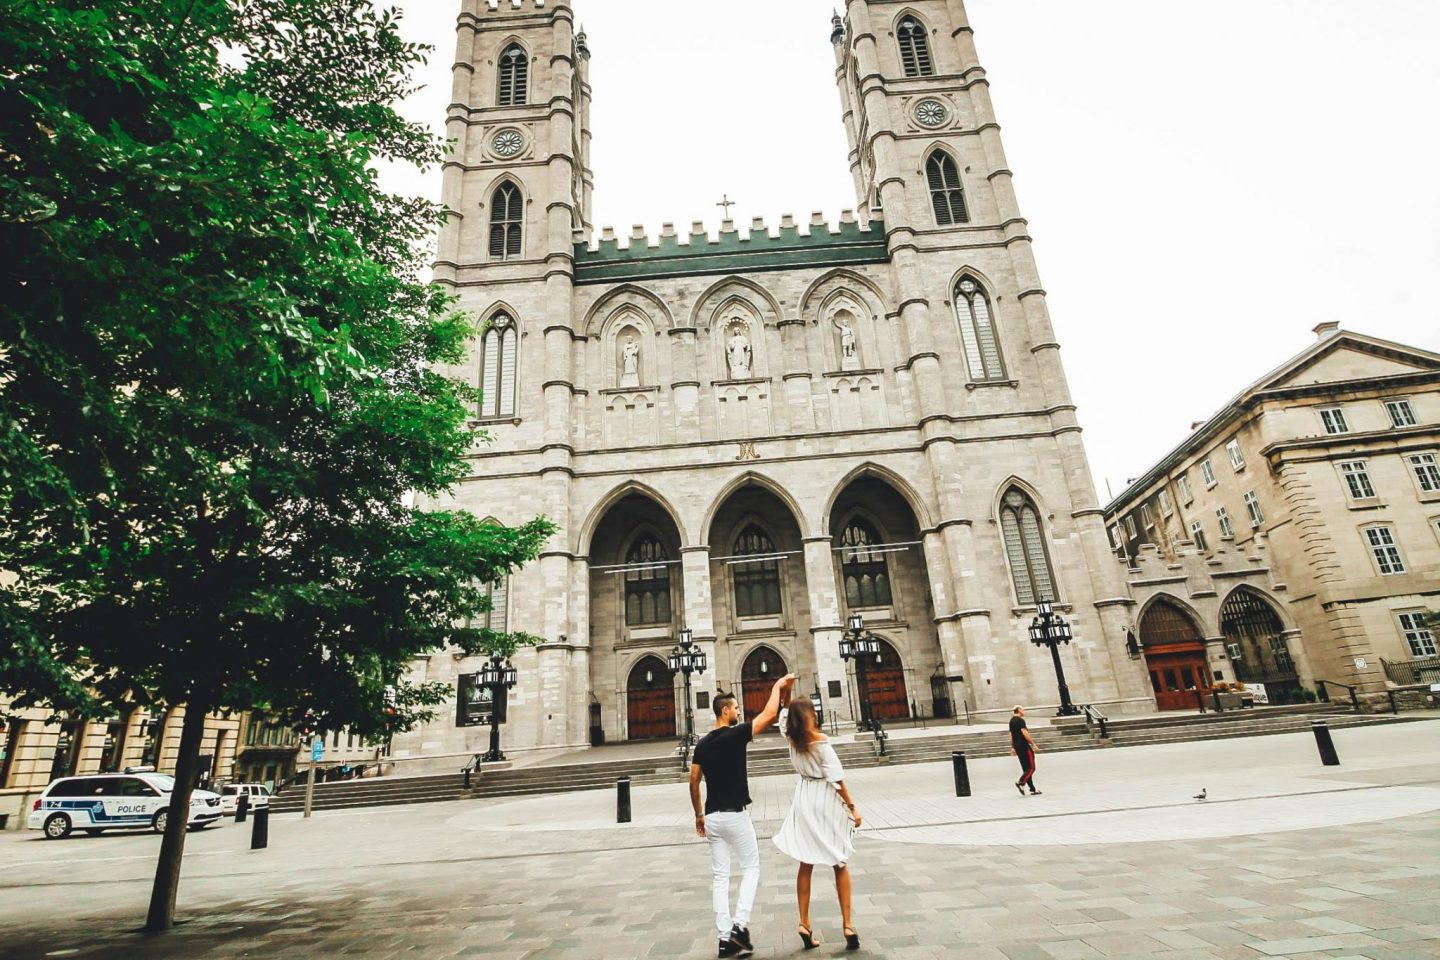 Old Montreal day tour near Notre Dame - by @danandnatty